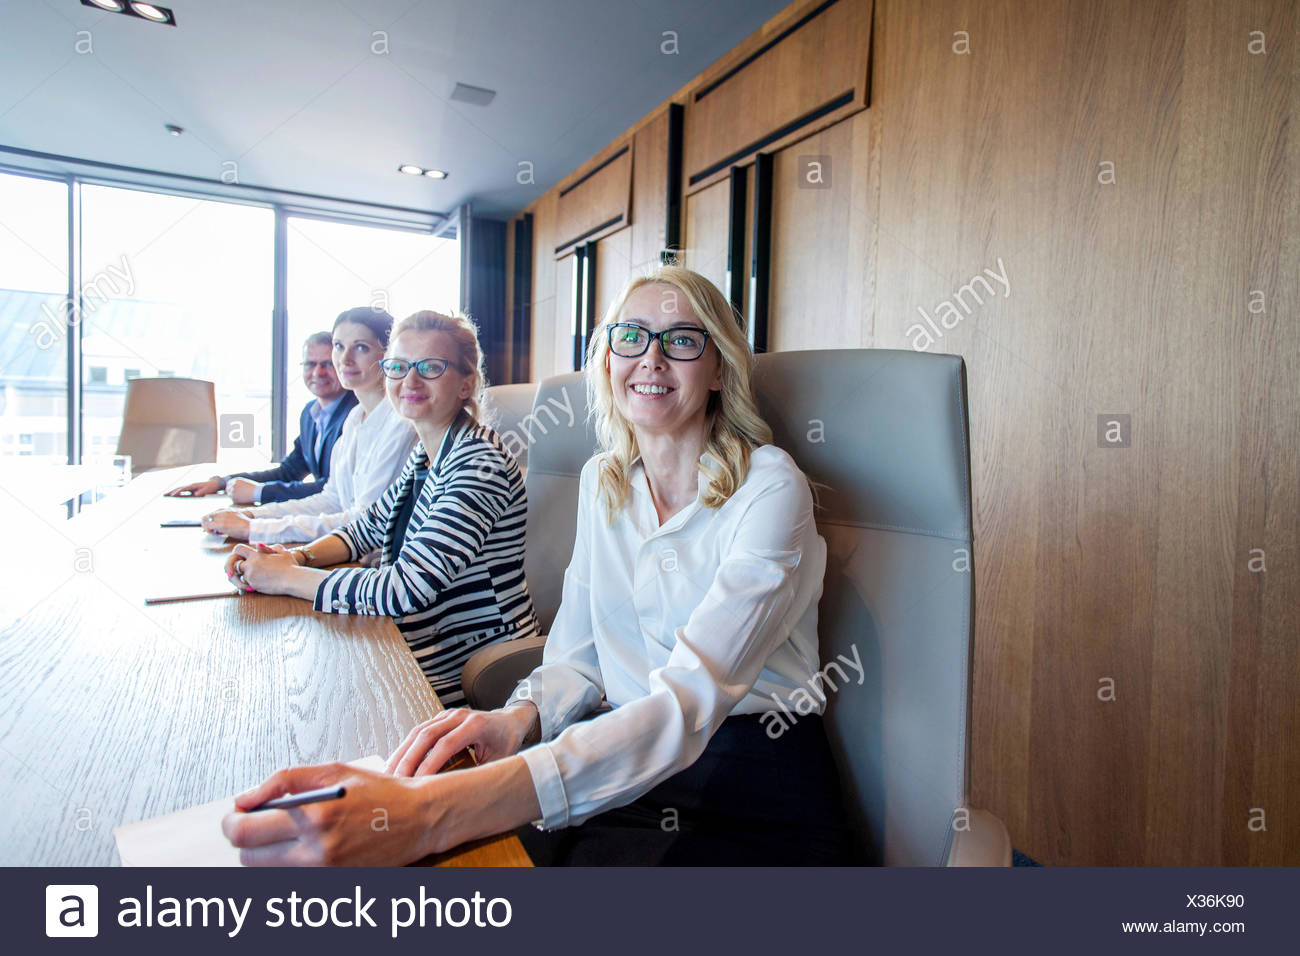 Business people sitting at conference table in board room - Stock Image